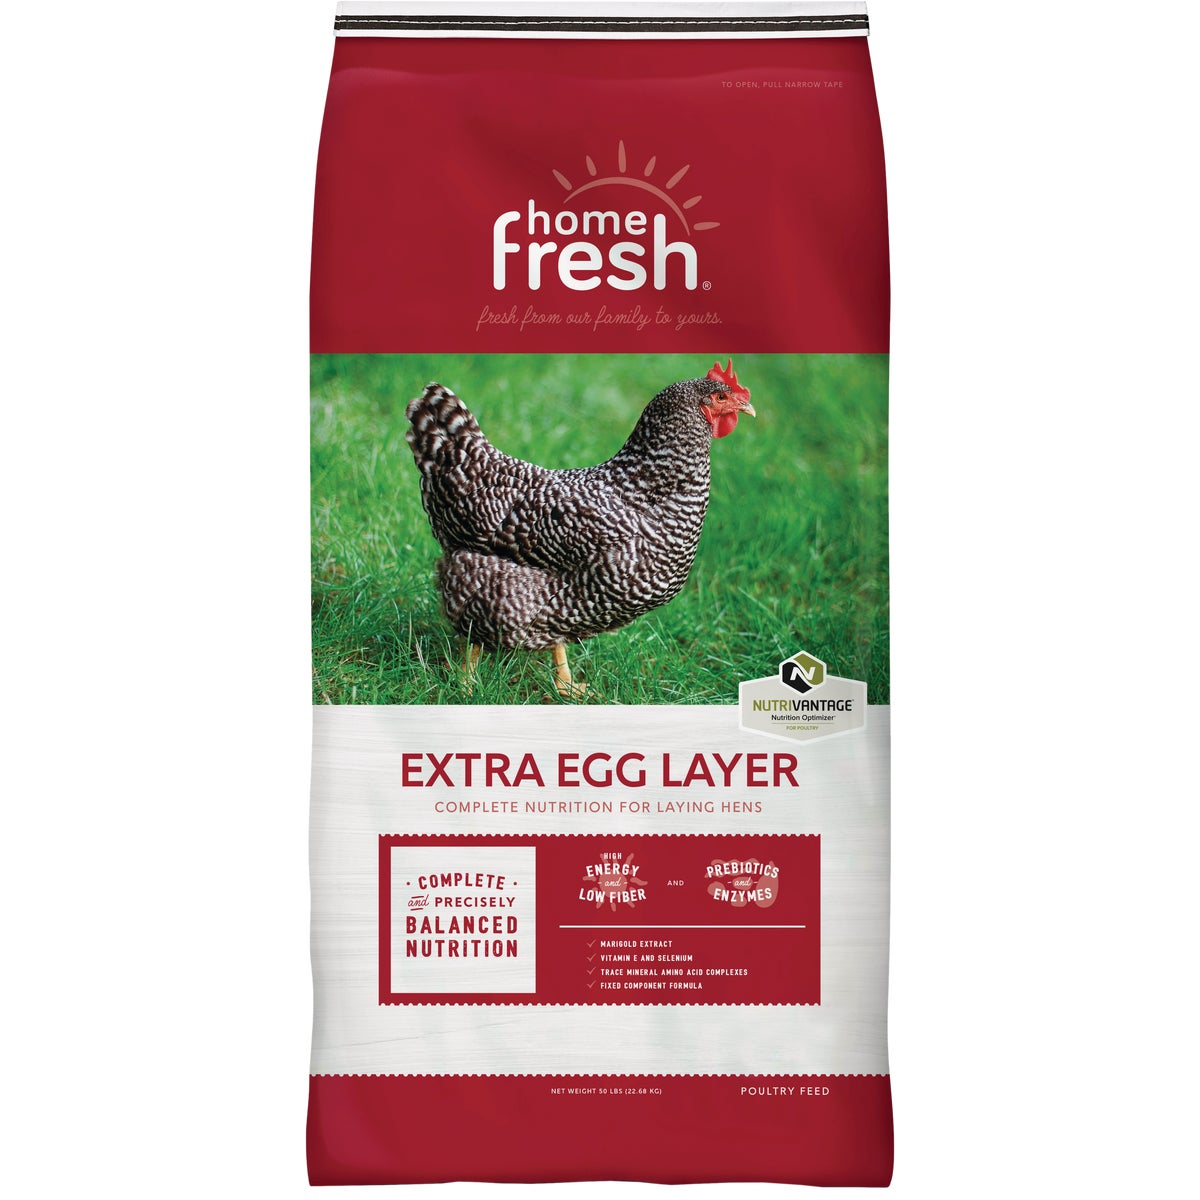 50LB XTRAEGG16 CHCKNFEED - 3483 by Kent Feeds Inc